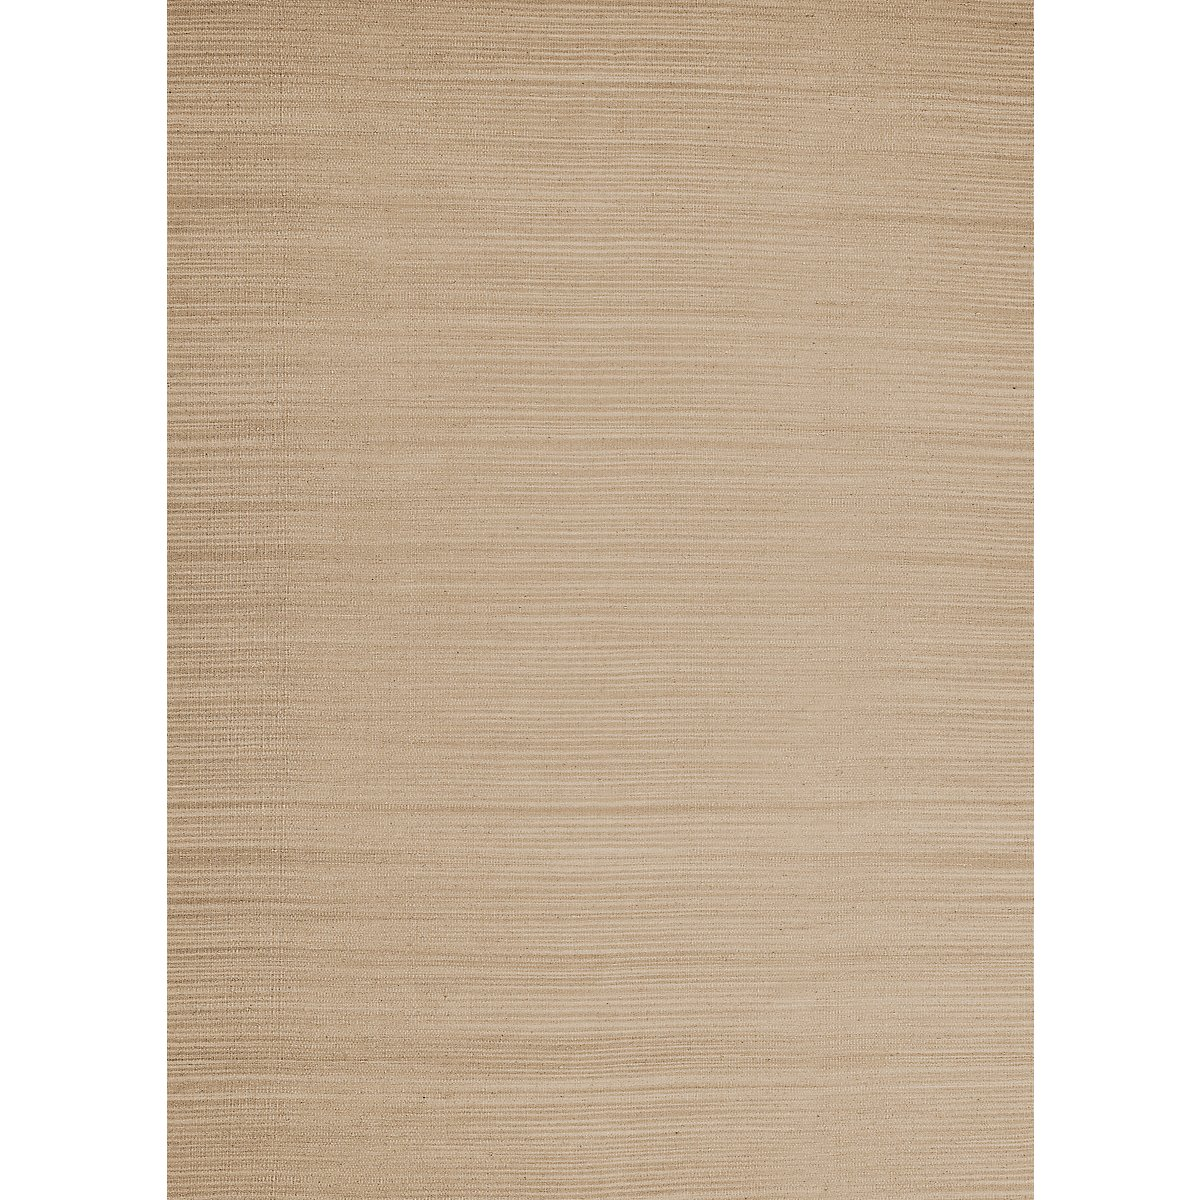 Nuance Light Gold 8X10 Area Rug